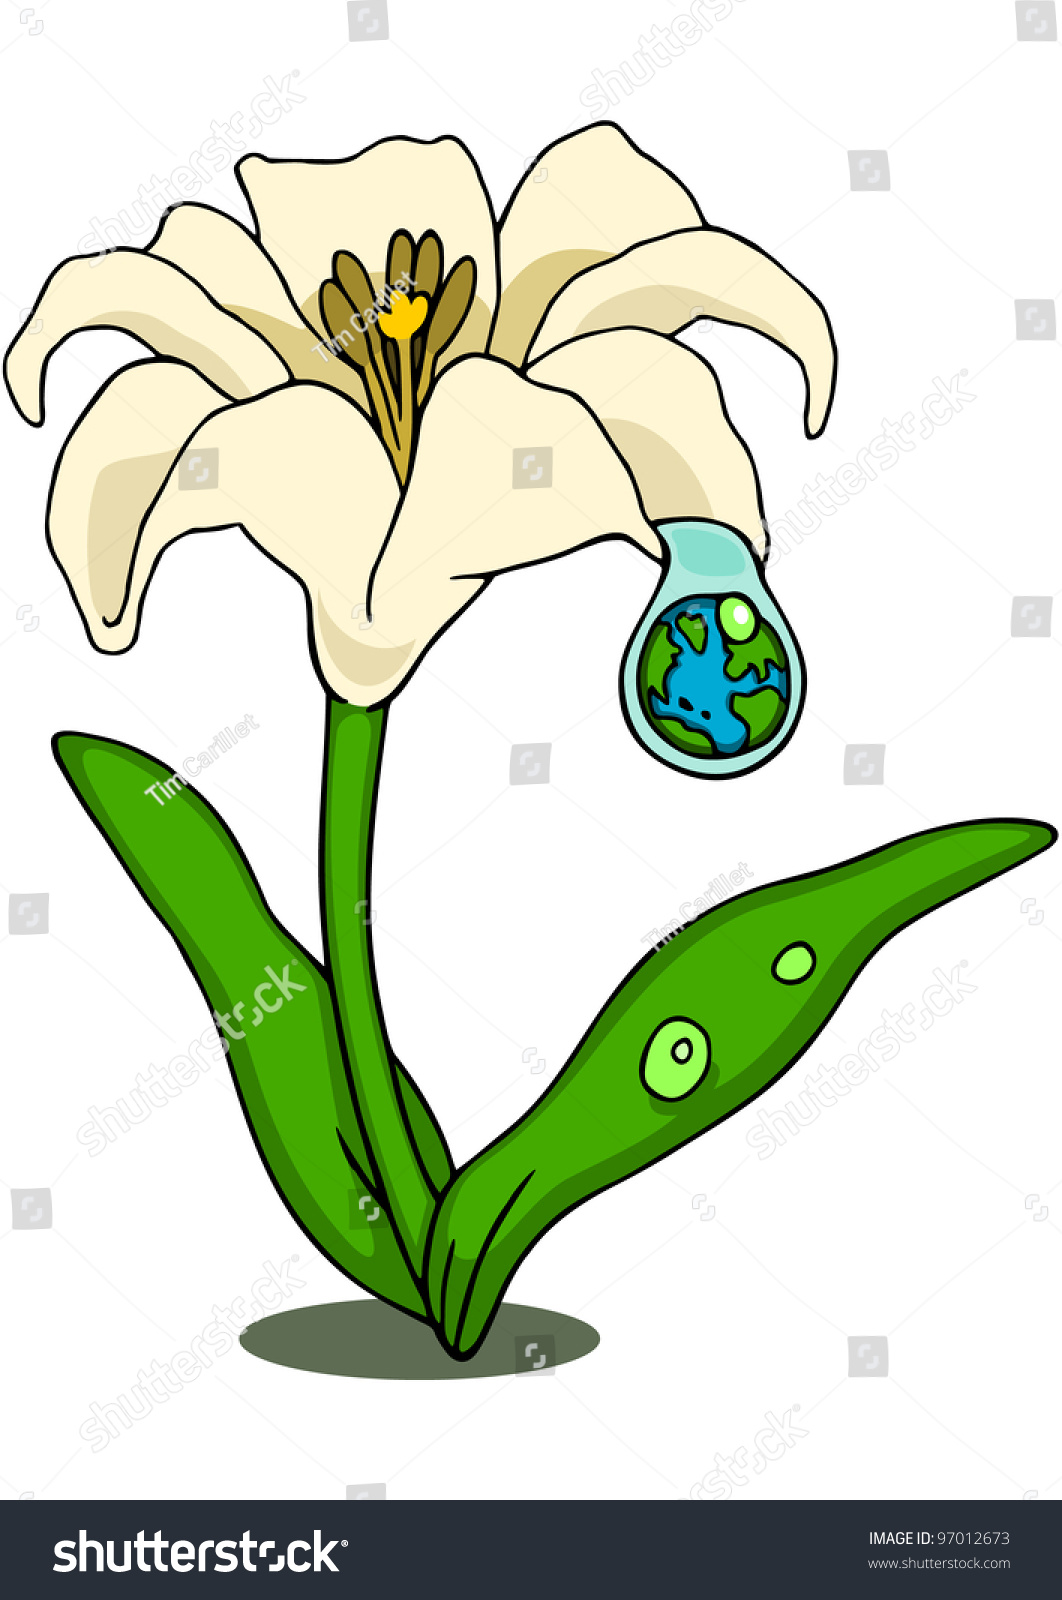 Lily flower droplet that reflects earth stock illustration 97012673 lily flower with a droplet that reflects the earth symbolizing hope or new life izmirmasajfo